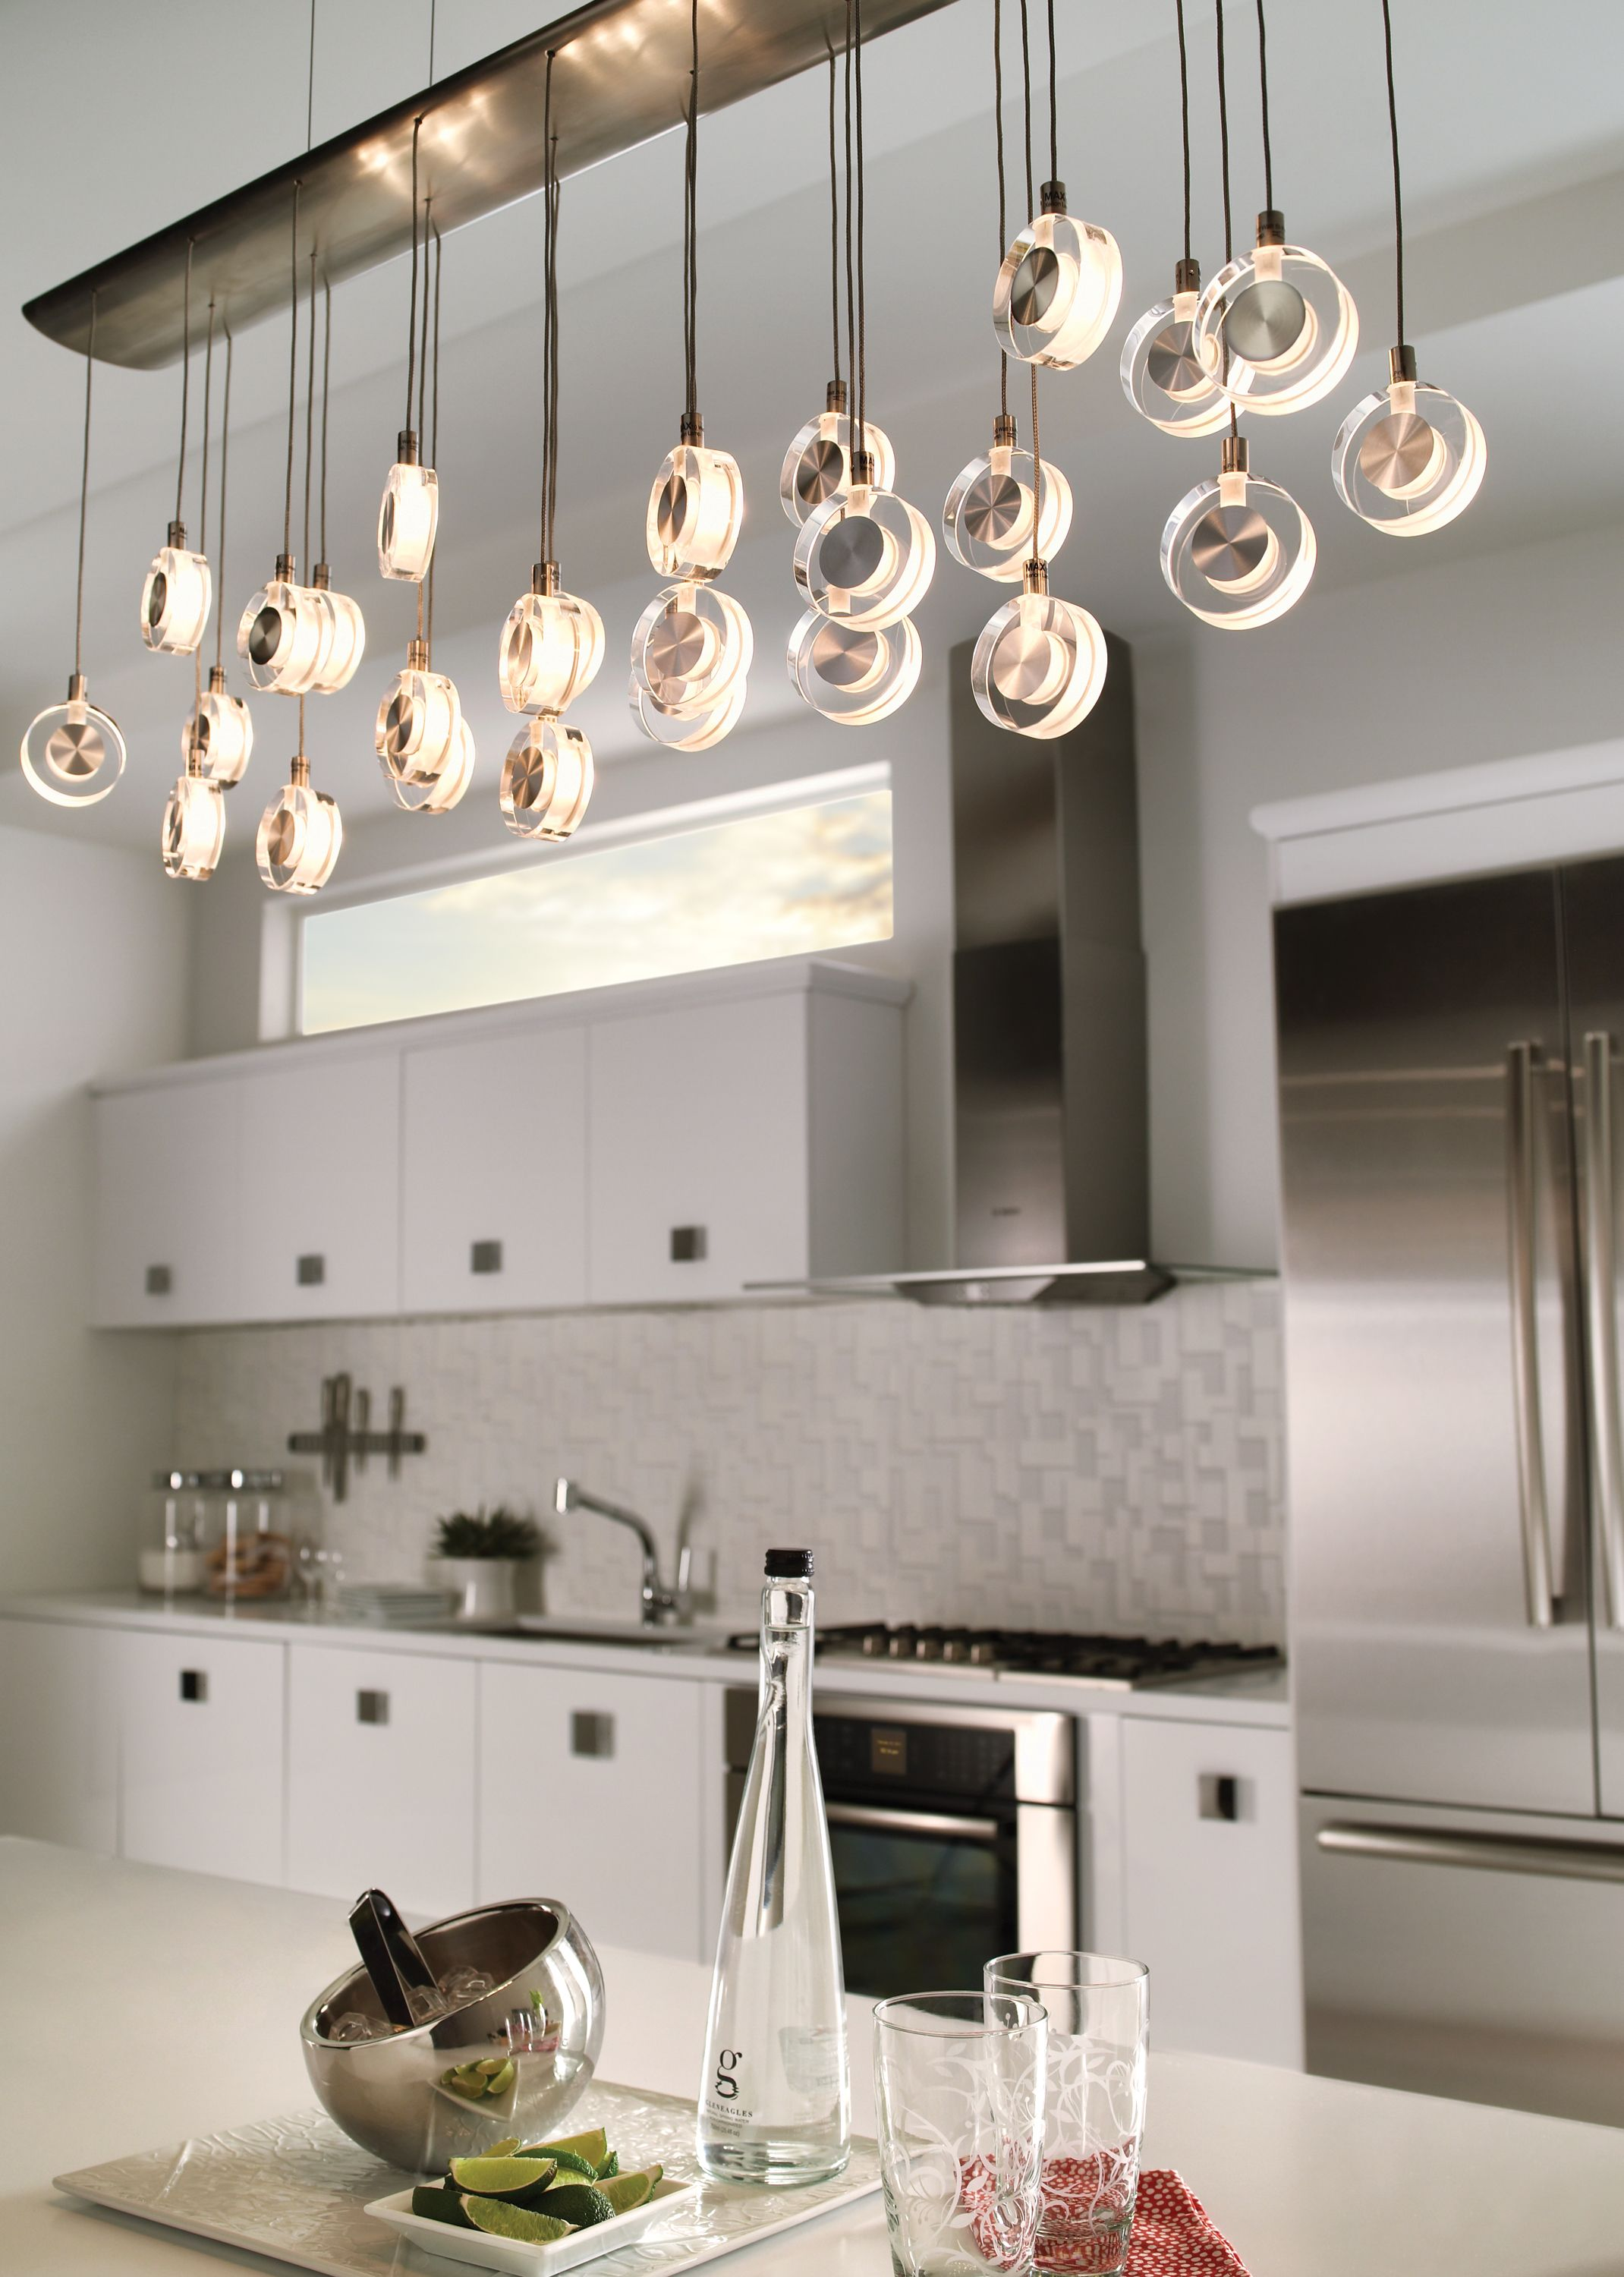 10 Best Kitchen Lighting Ideas Pictures For Design Your New Kitchen Kitchen Ceiling Design Kitchen Lighting Remodel Best Kitchen Lighting